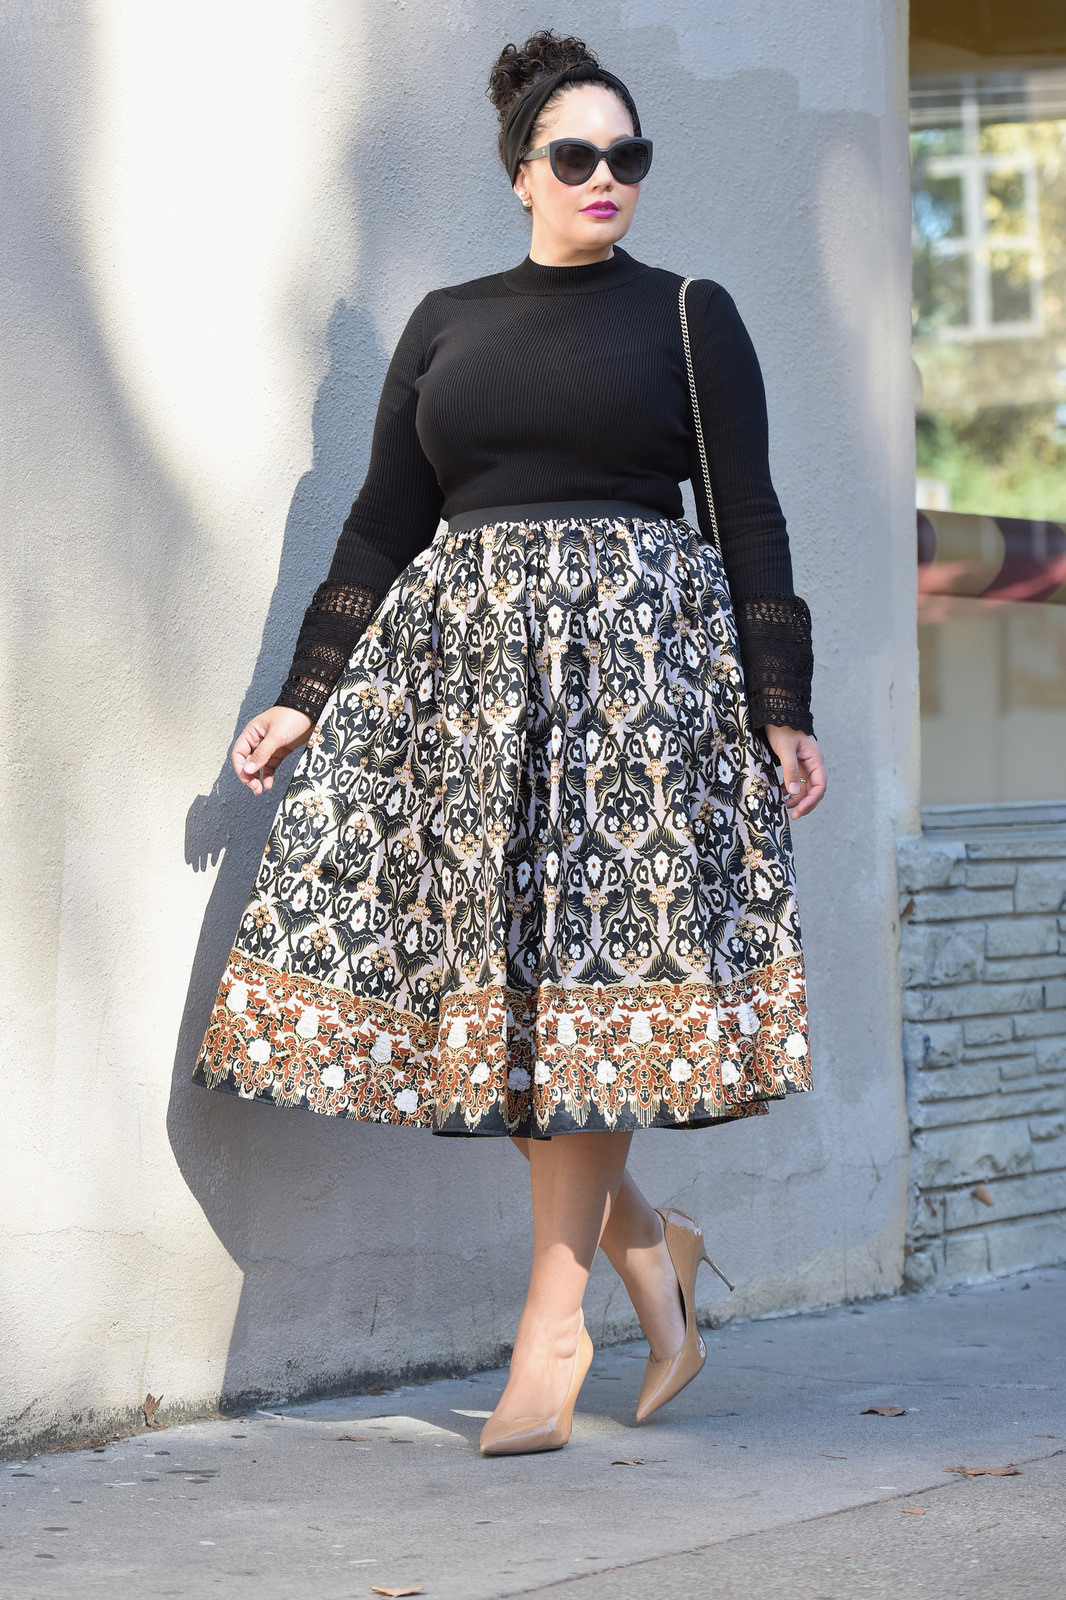 A woman is wearing a black turtleneck and patterned skirt